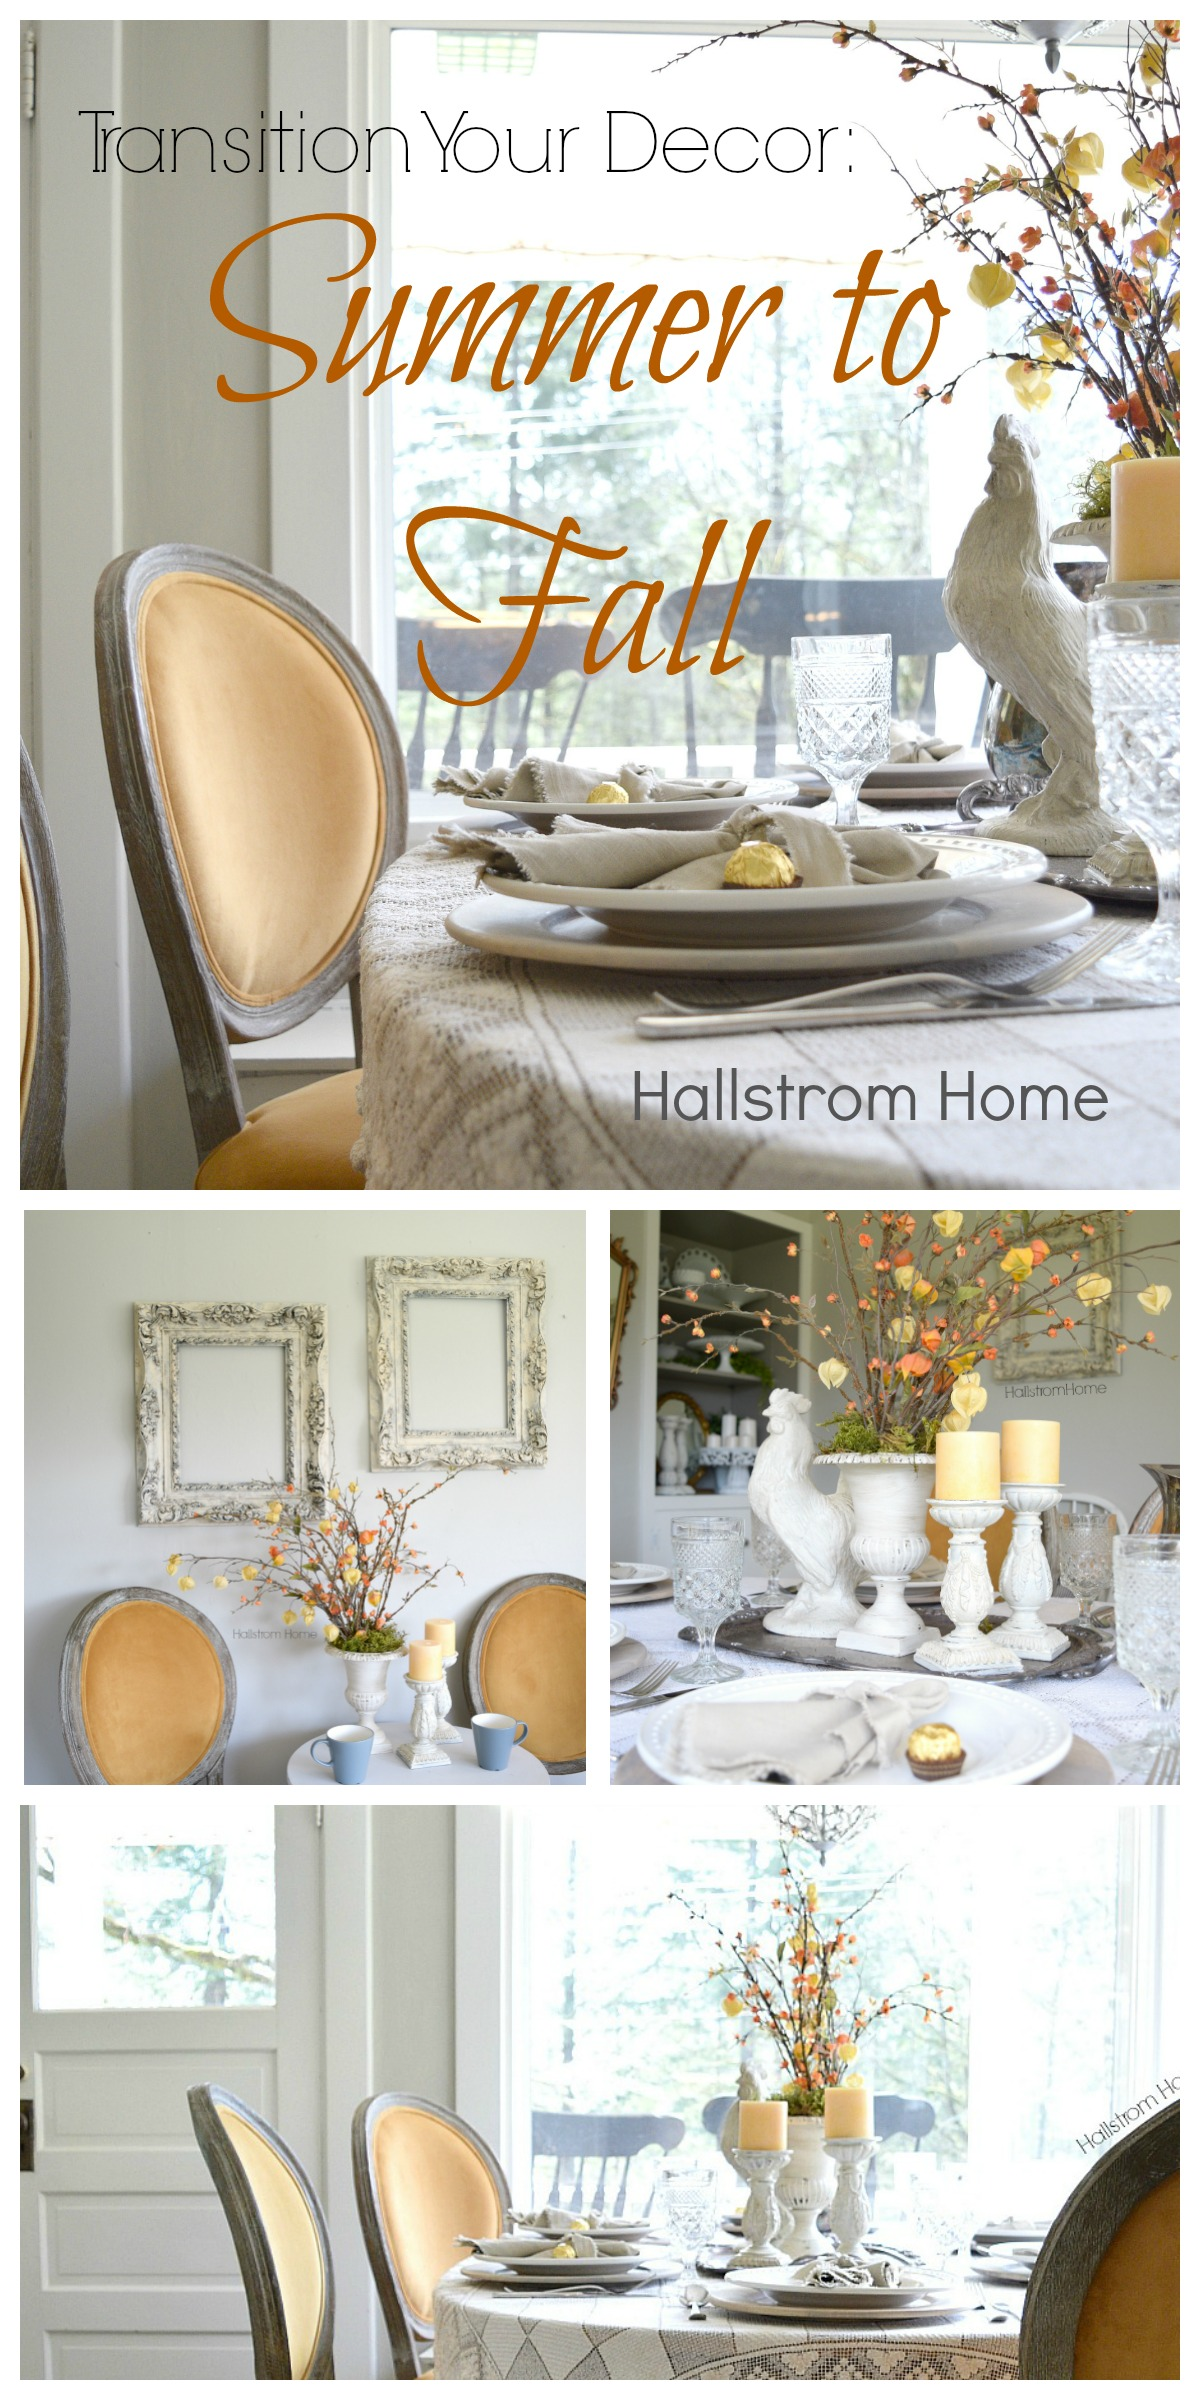 Living Room Your Decor transition your decor summer to fall hallstrom home from by home